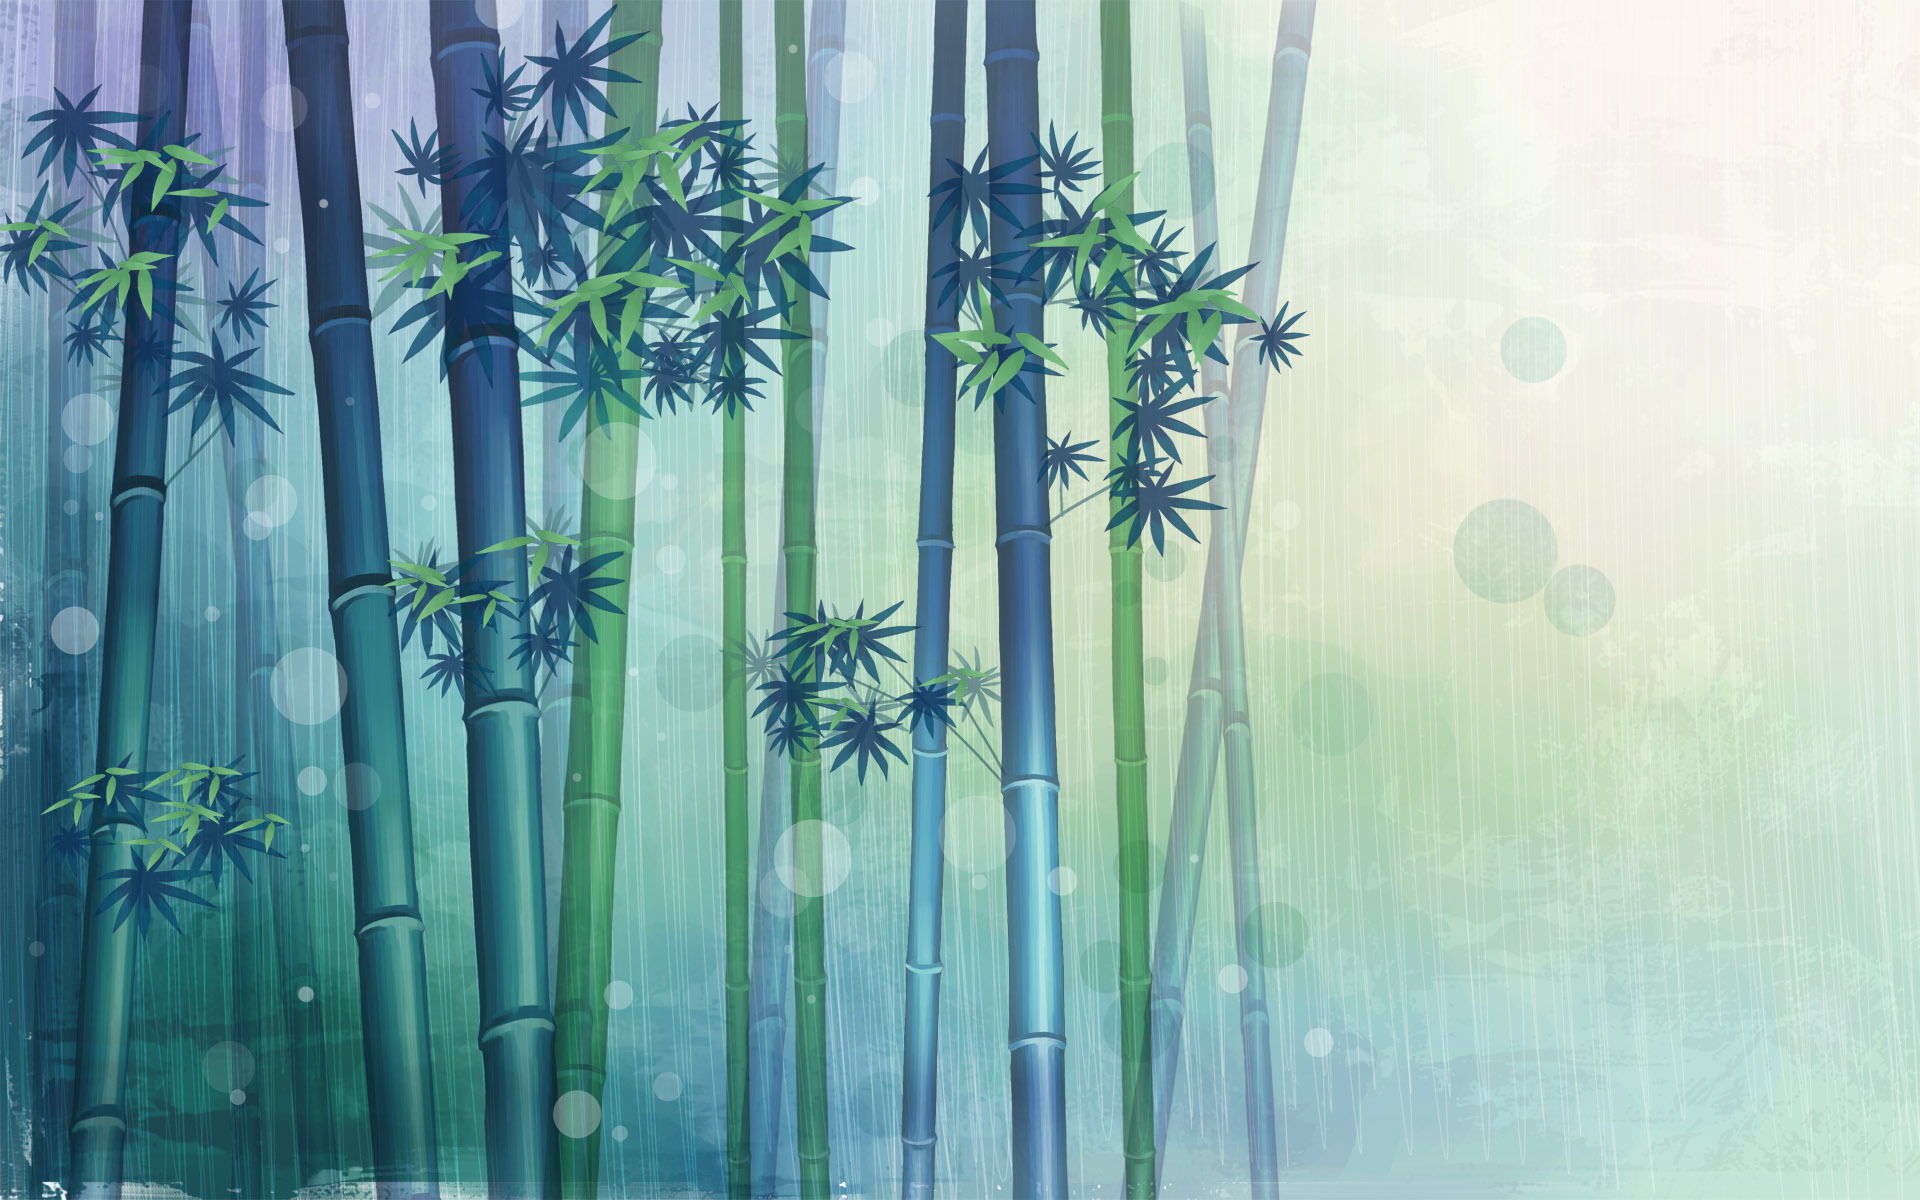 Drawn bamboo 1920x1200 Wallpapers Collection 95 HD